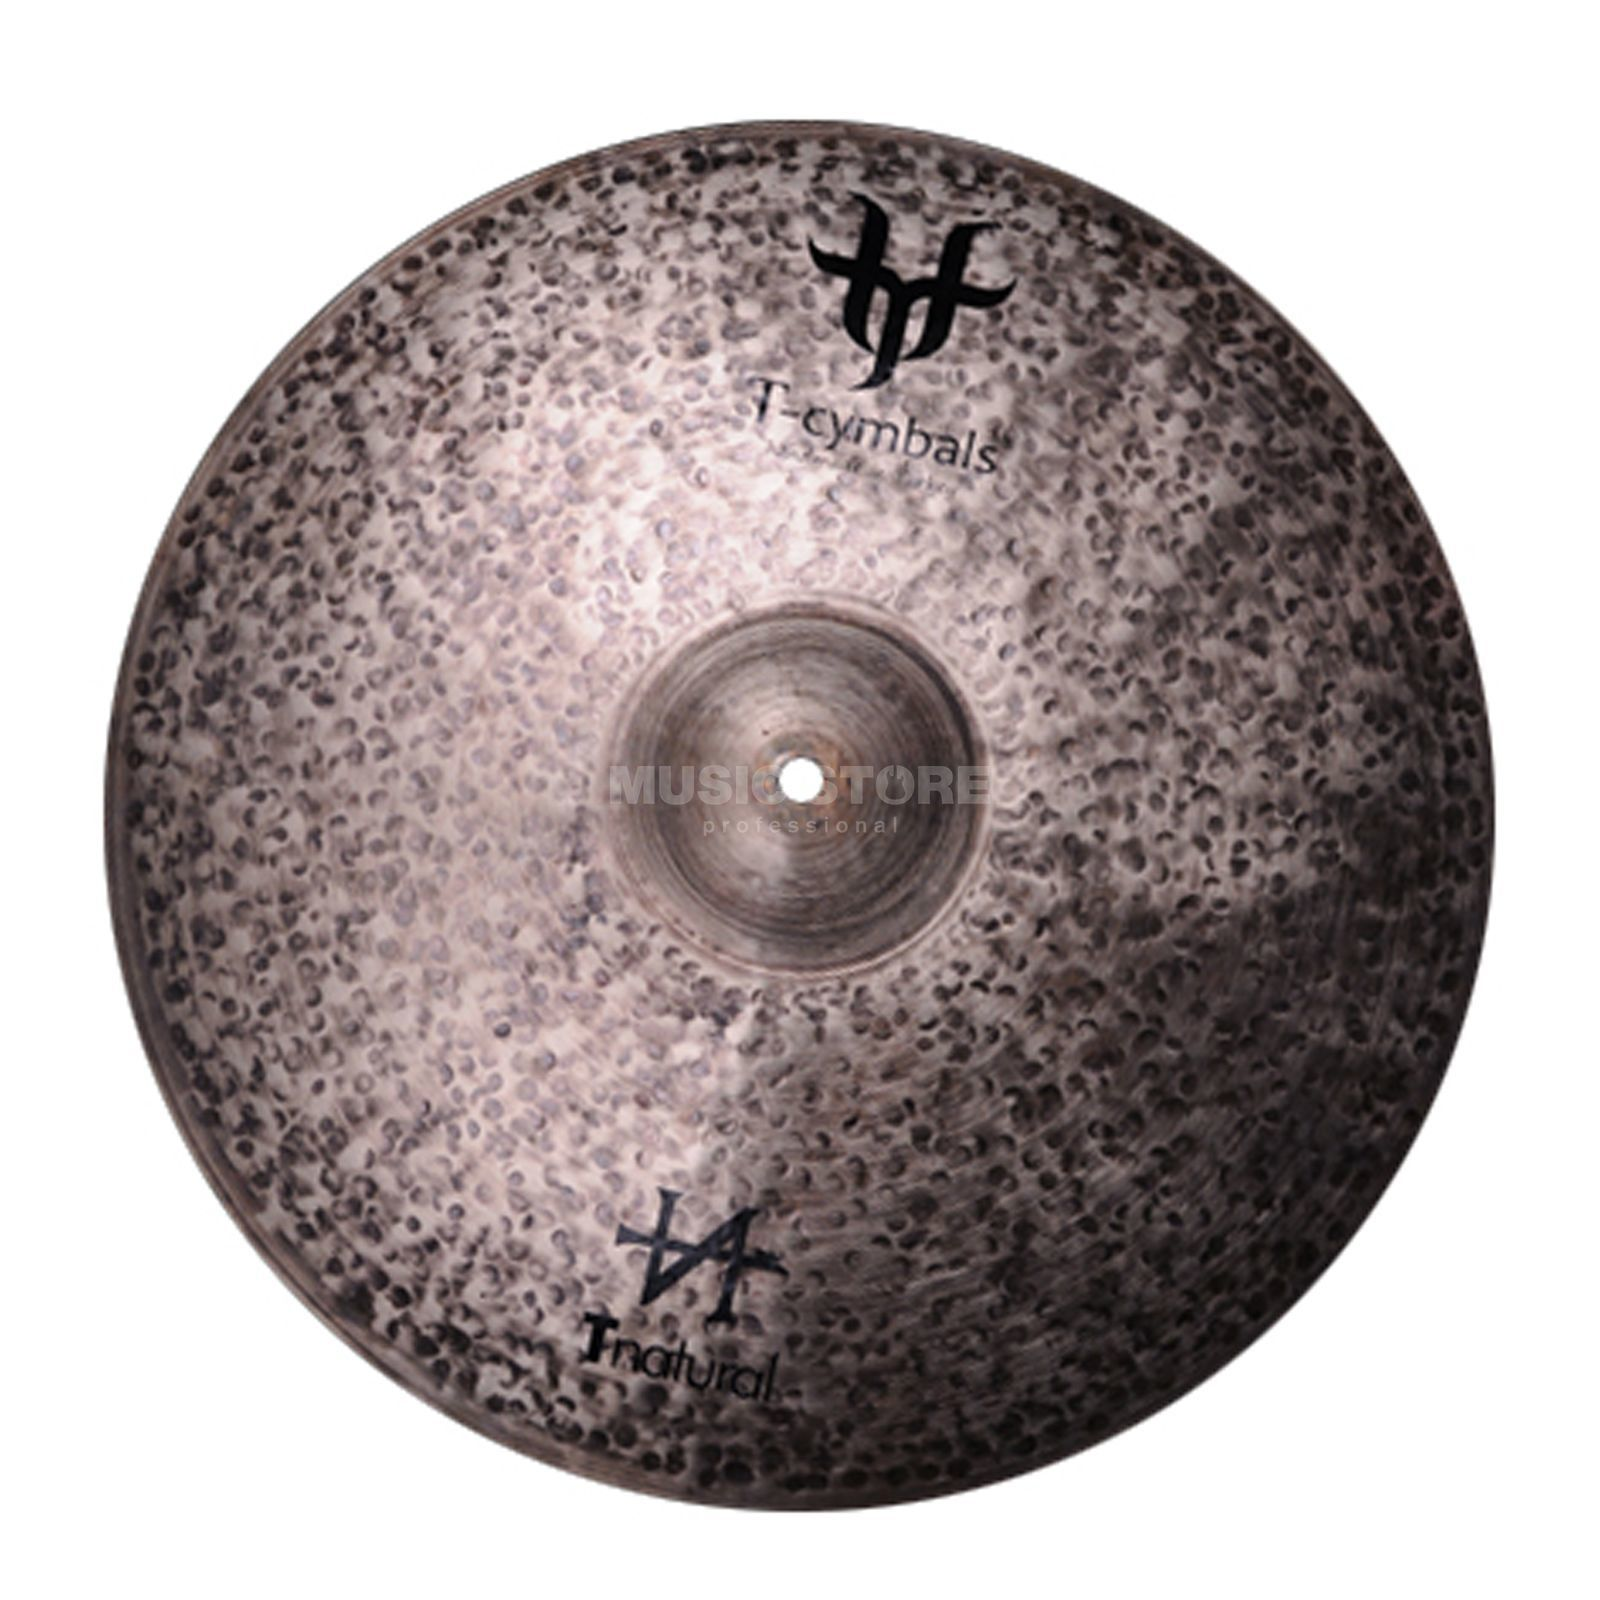 "T-Cymbals T-Natural Crash Ride 19""  Produktbillede"